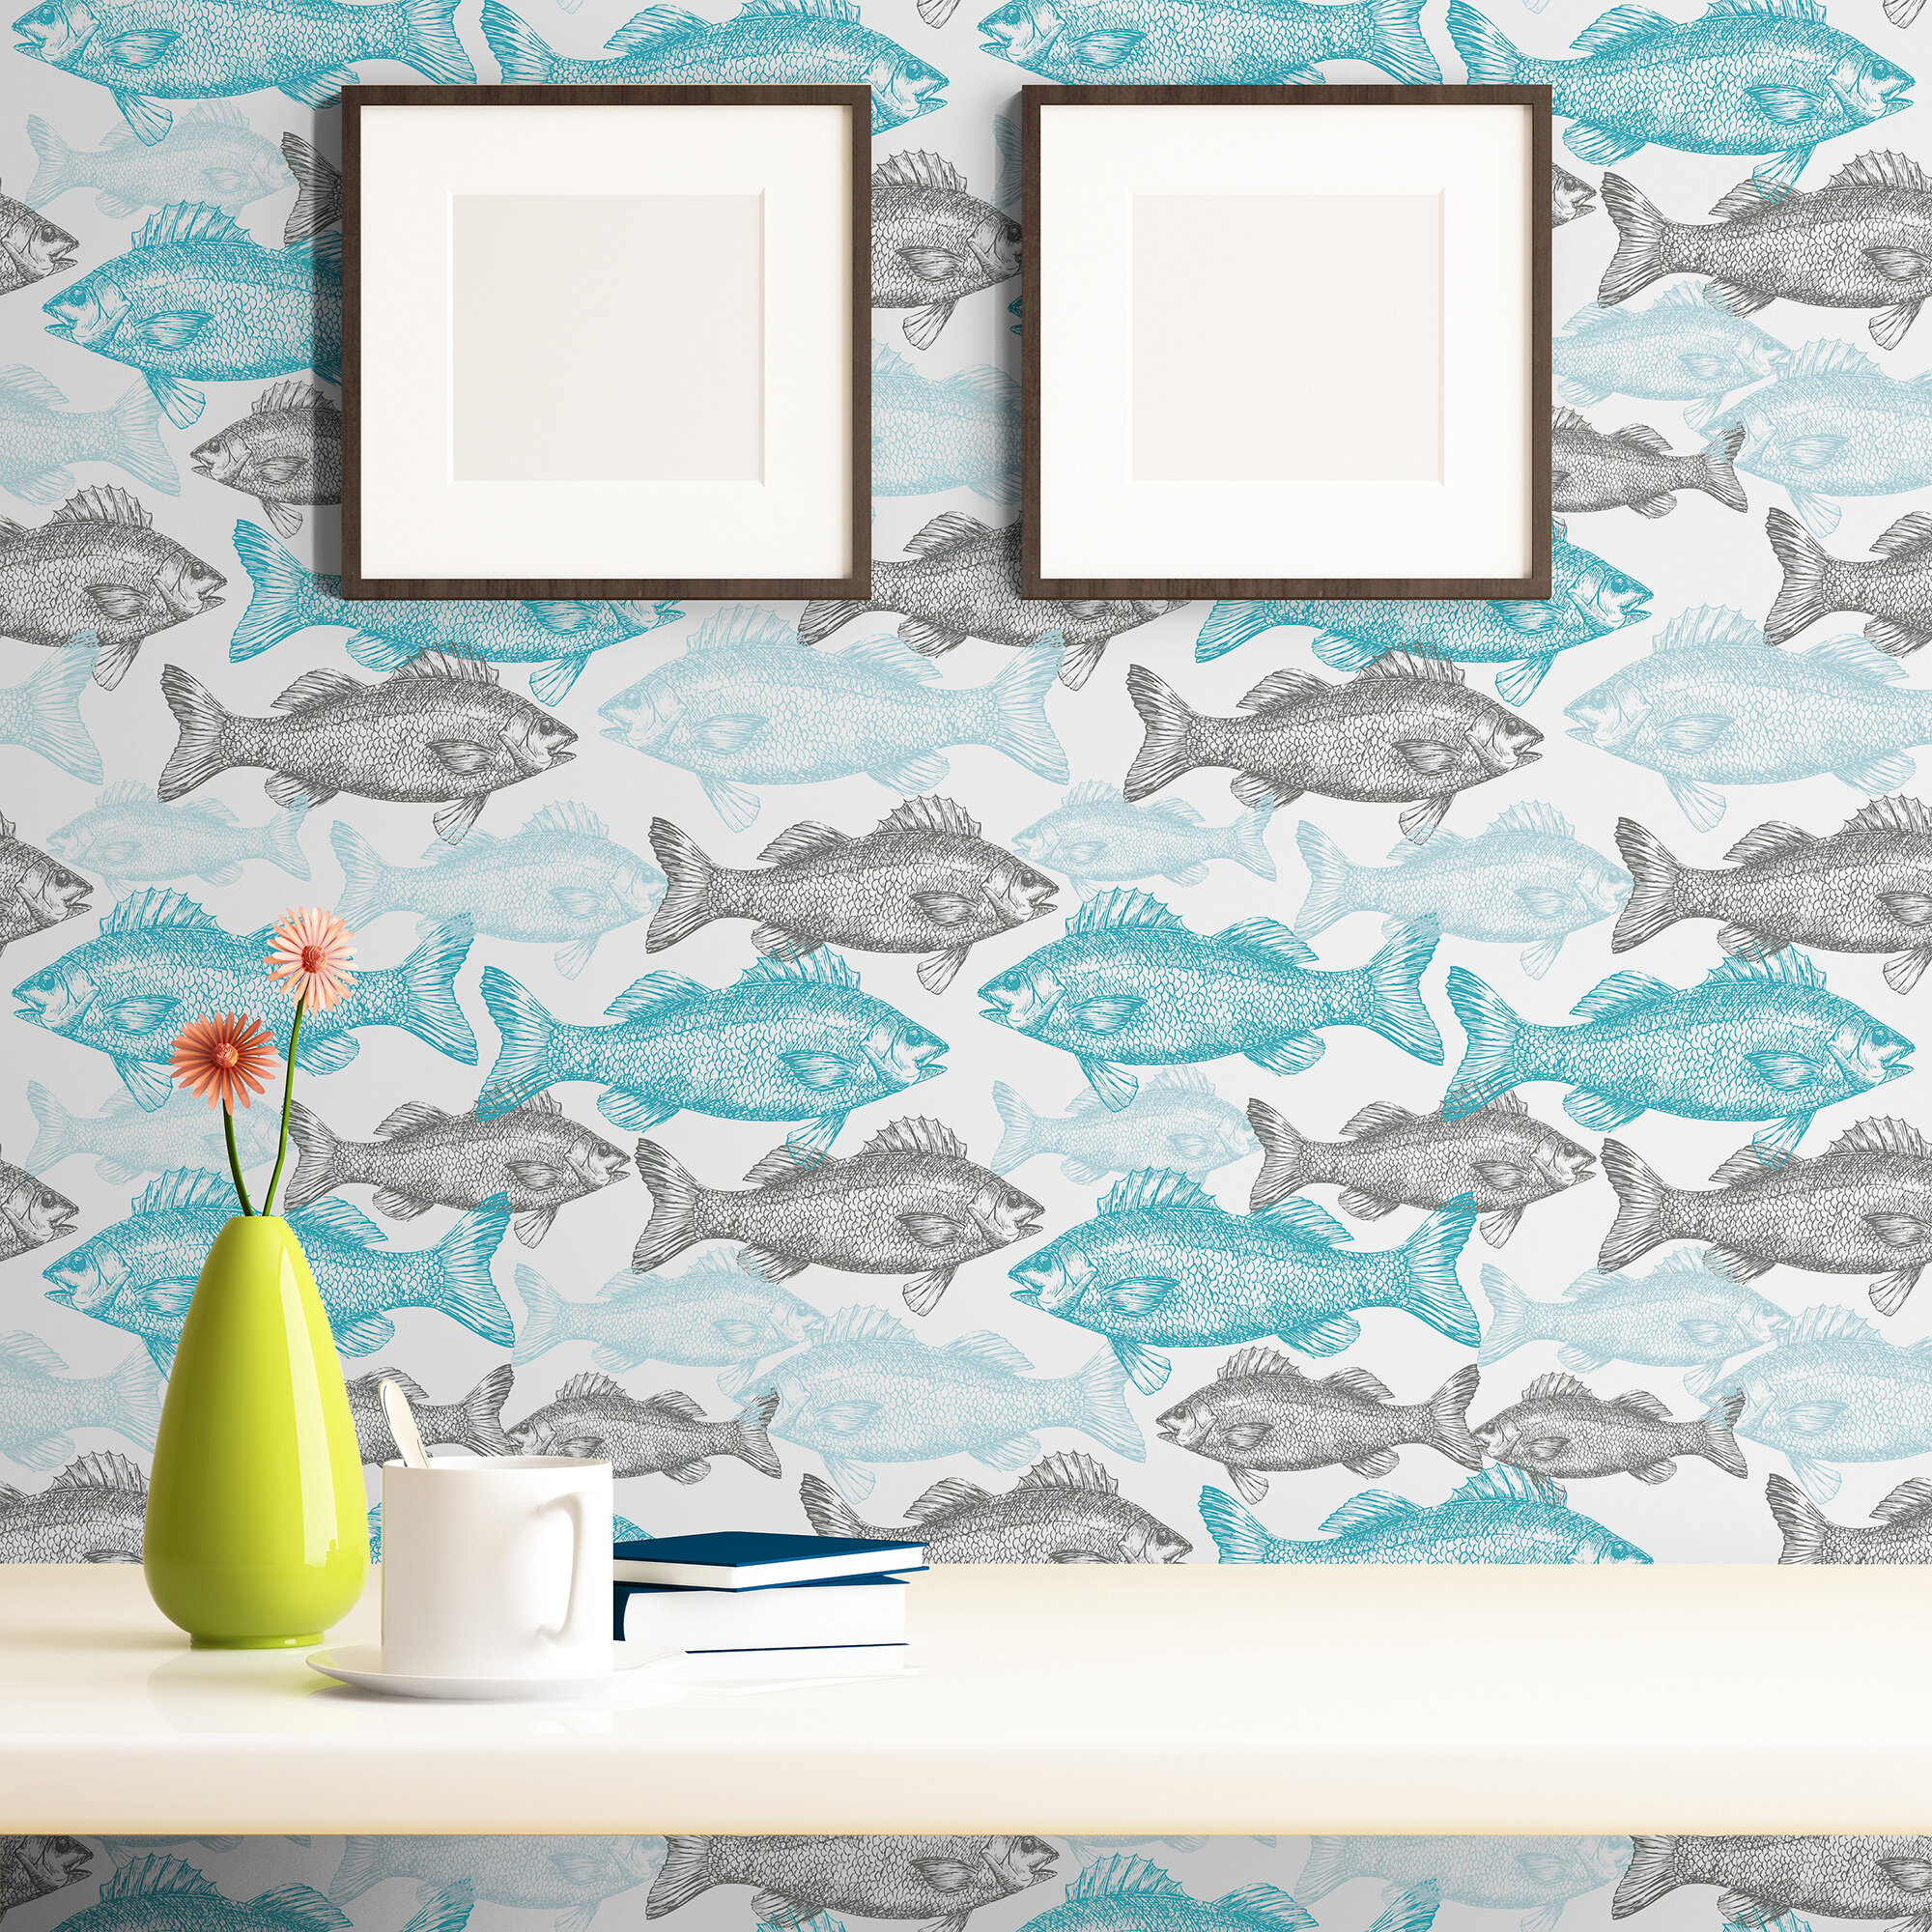 Breakwater Bay Branch Fish Nautical Removable Peel And Stick Wallpaper Panel Wayfair